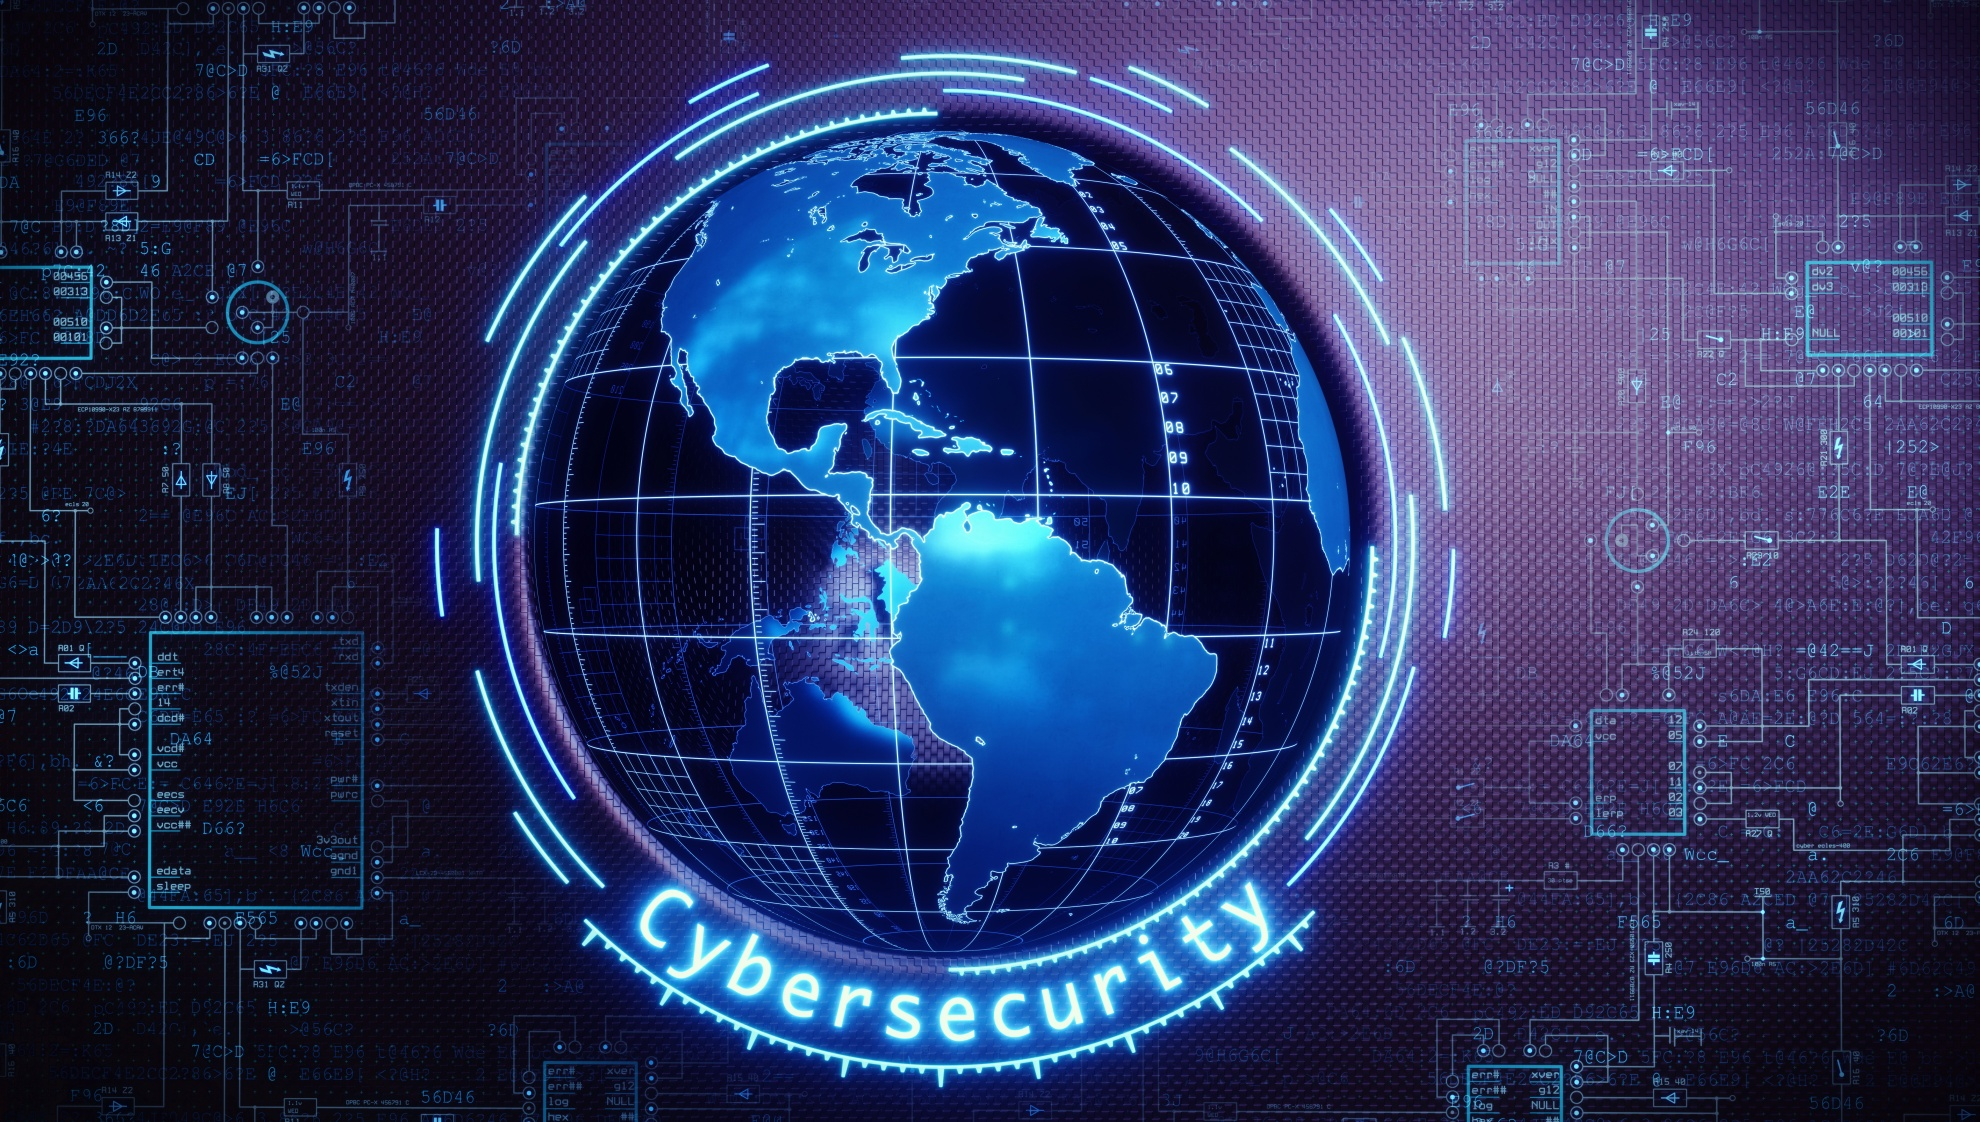 Cybersecurity Professionals Feel Threatened by the Adoption of AI and Automation Tools, Survey Finds